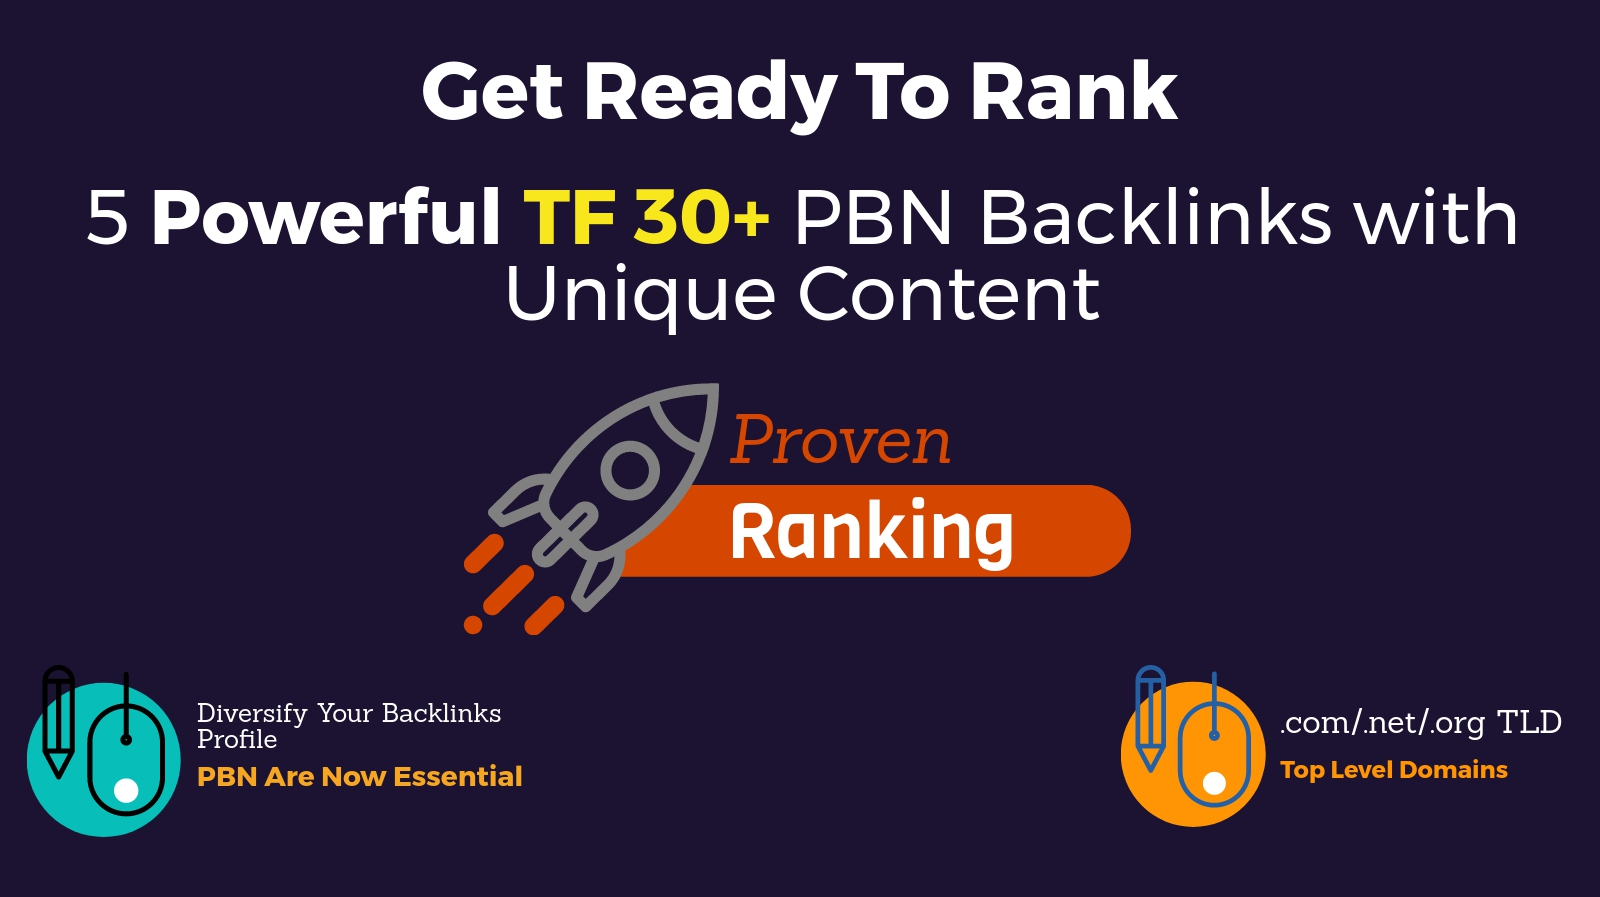 2019 Update EliteX 5 Homepage TF 40+ Powerful PBN Backlinks Posts V3 - Proven Ranking with Unique Content